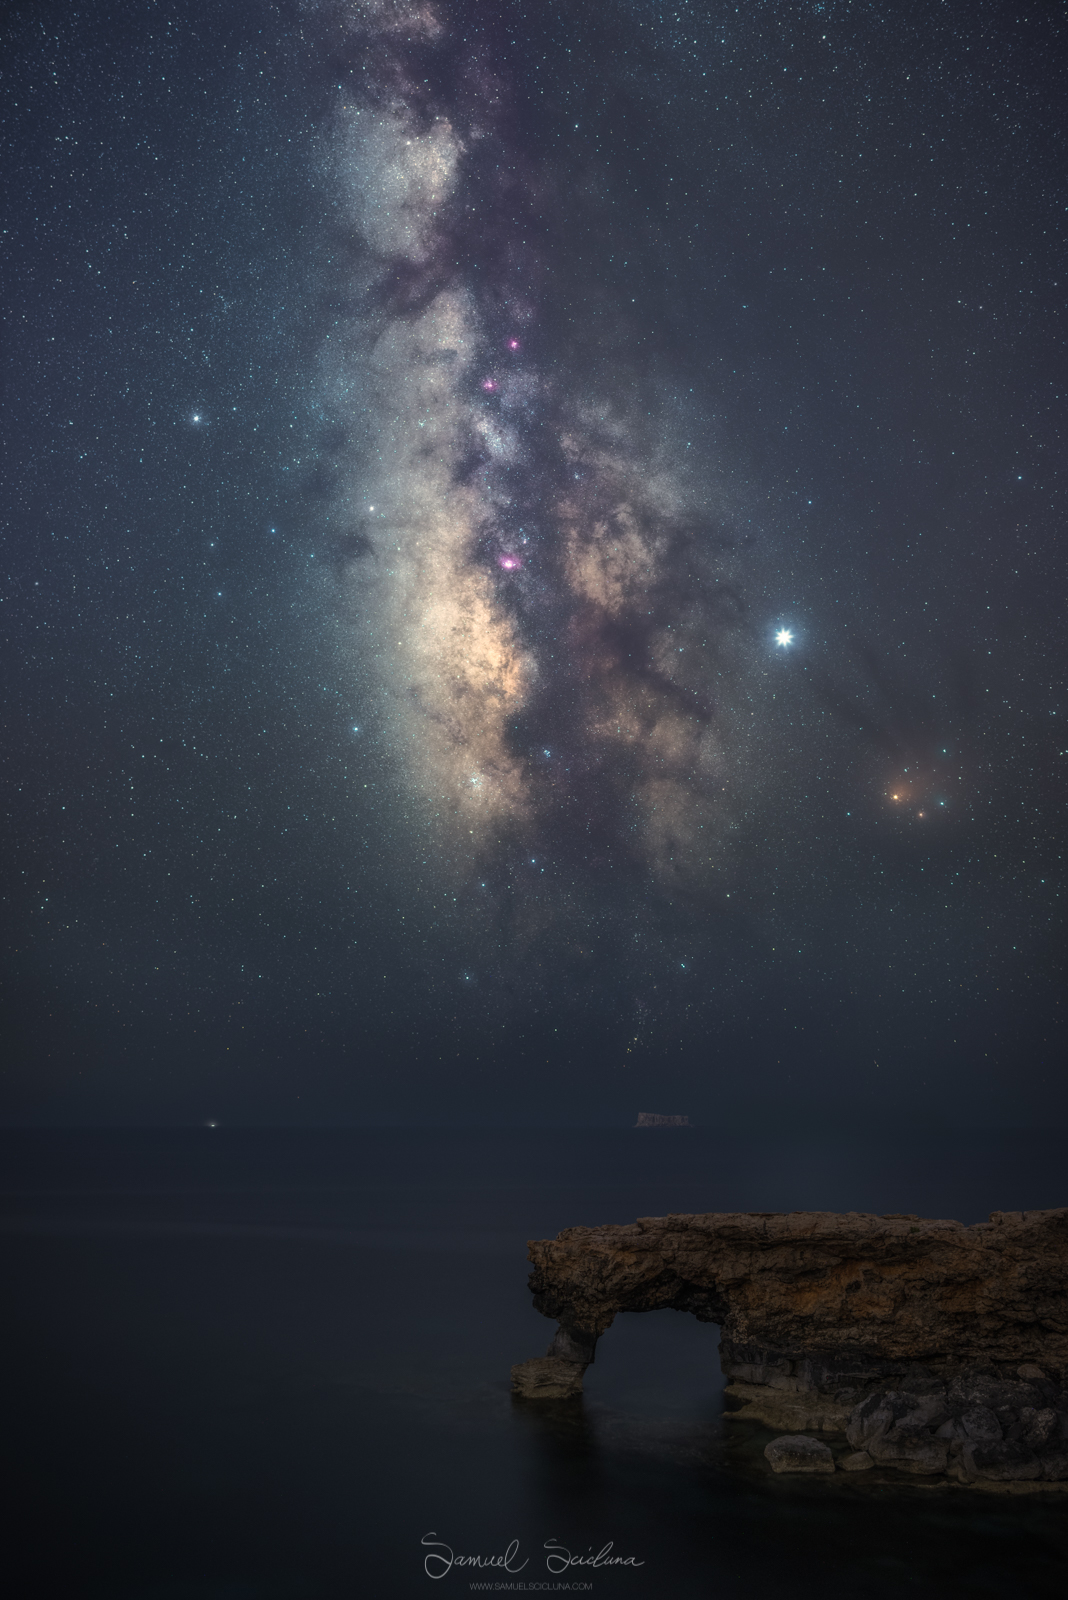 A Tracked image of the Milkyway over Ras il Mignuna in Qrendi, Malta.